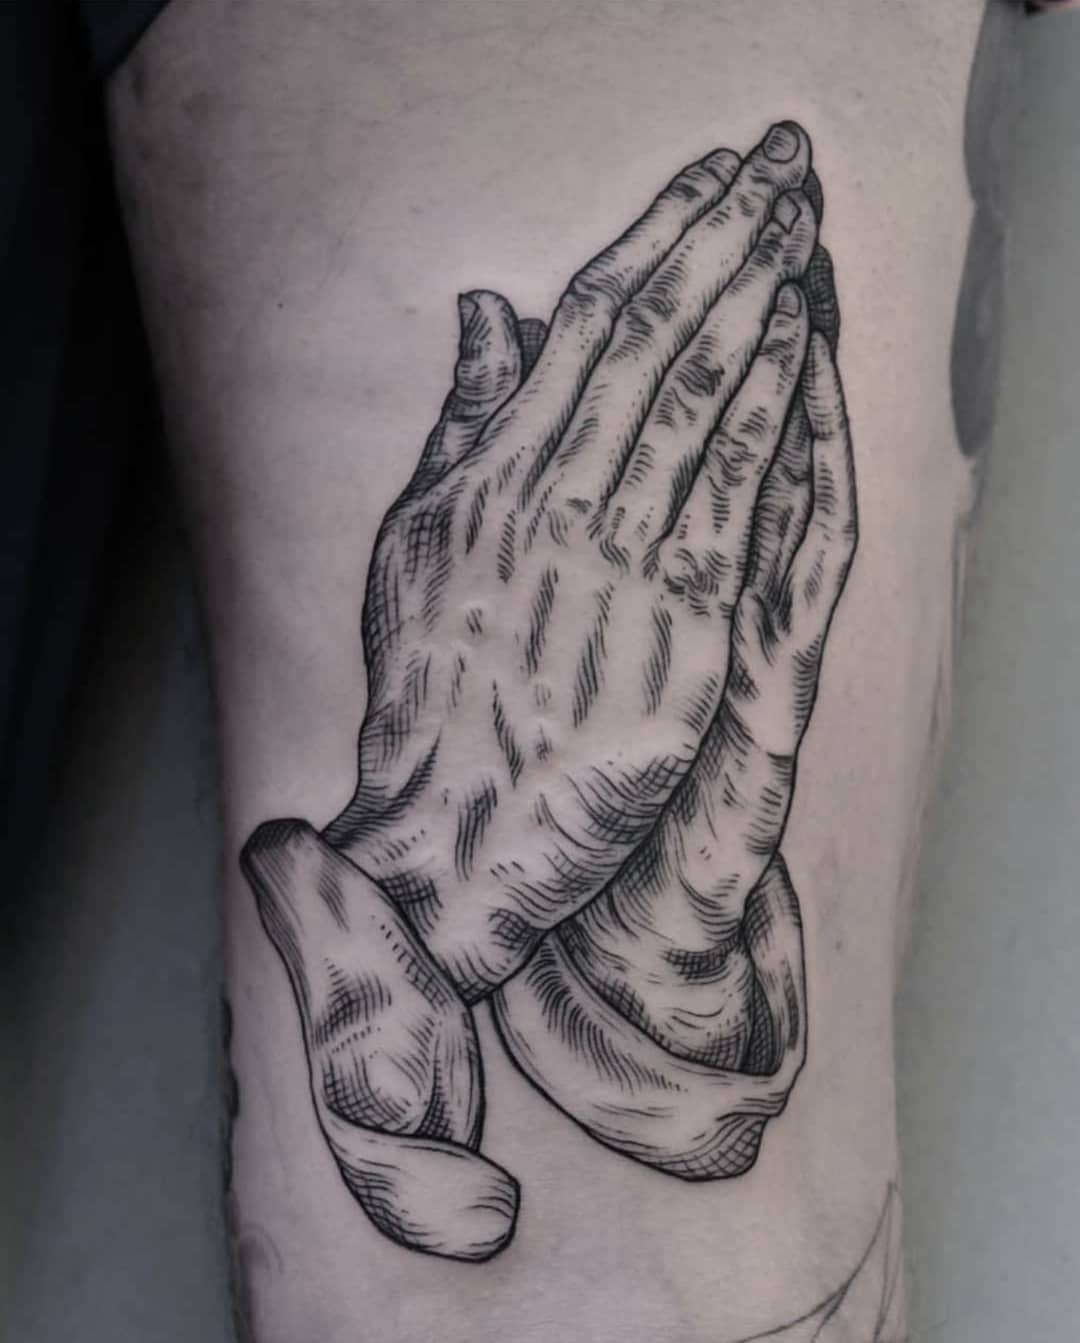 Dürer's praying hands tattoo